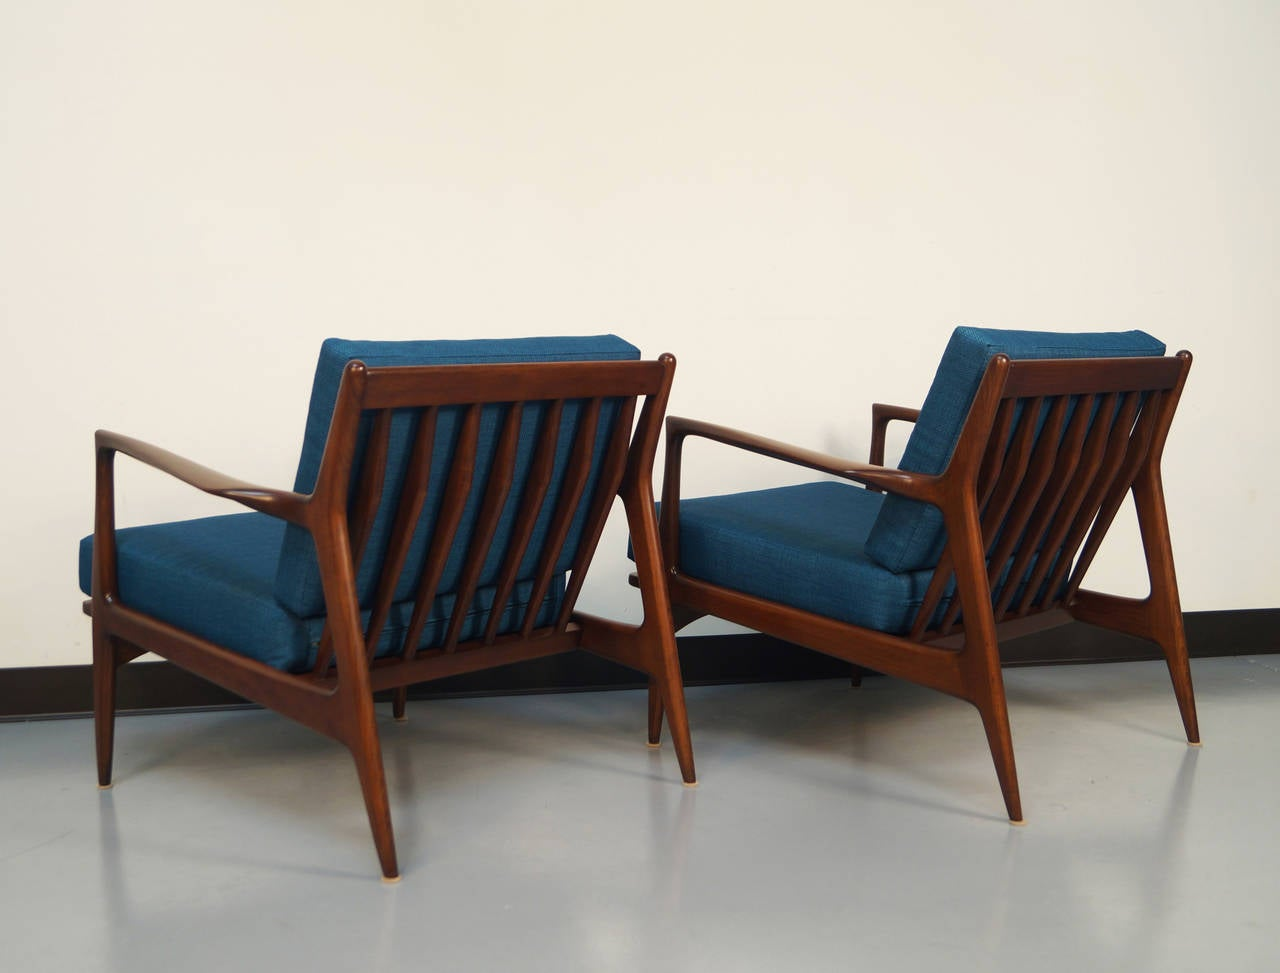 Danish modern lounge chairs by ib kofod larsen at 1stdibs for Contemporary lounge furniture